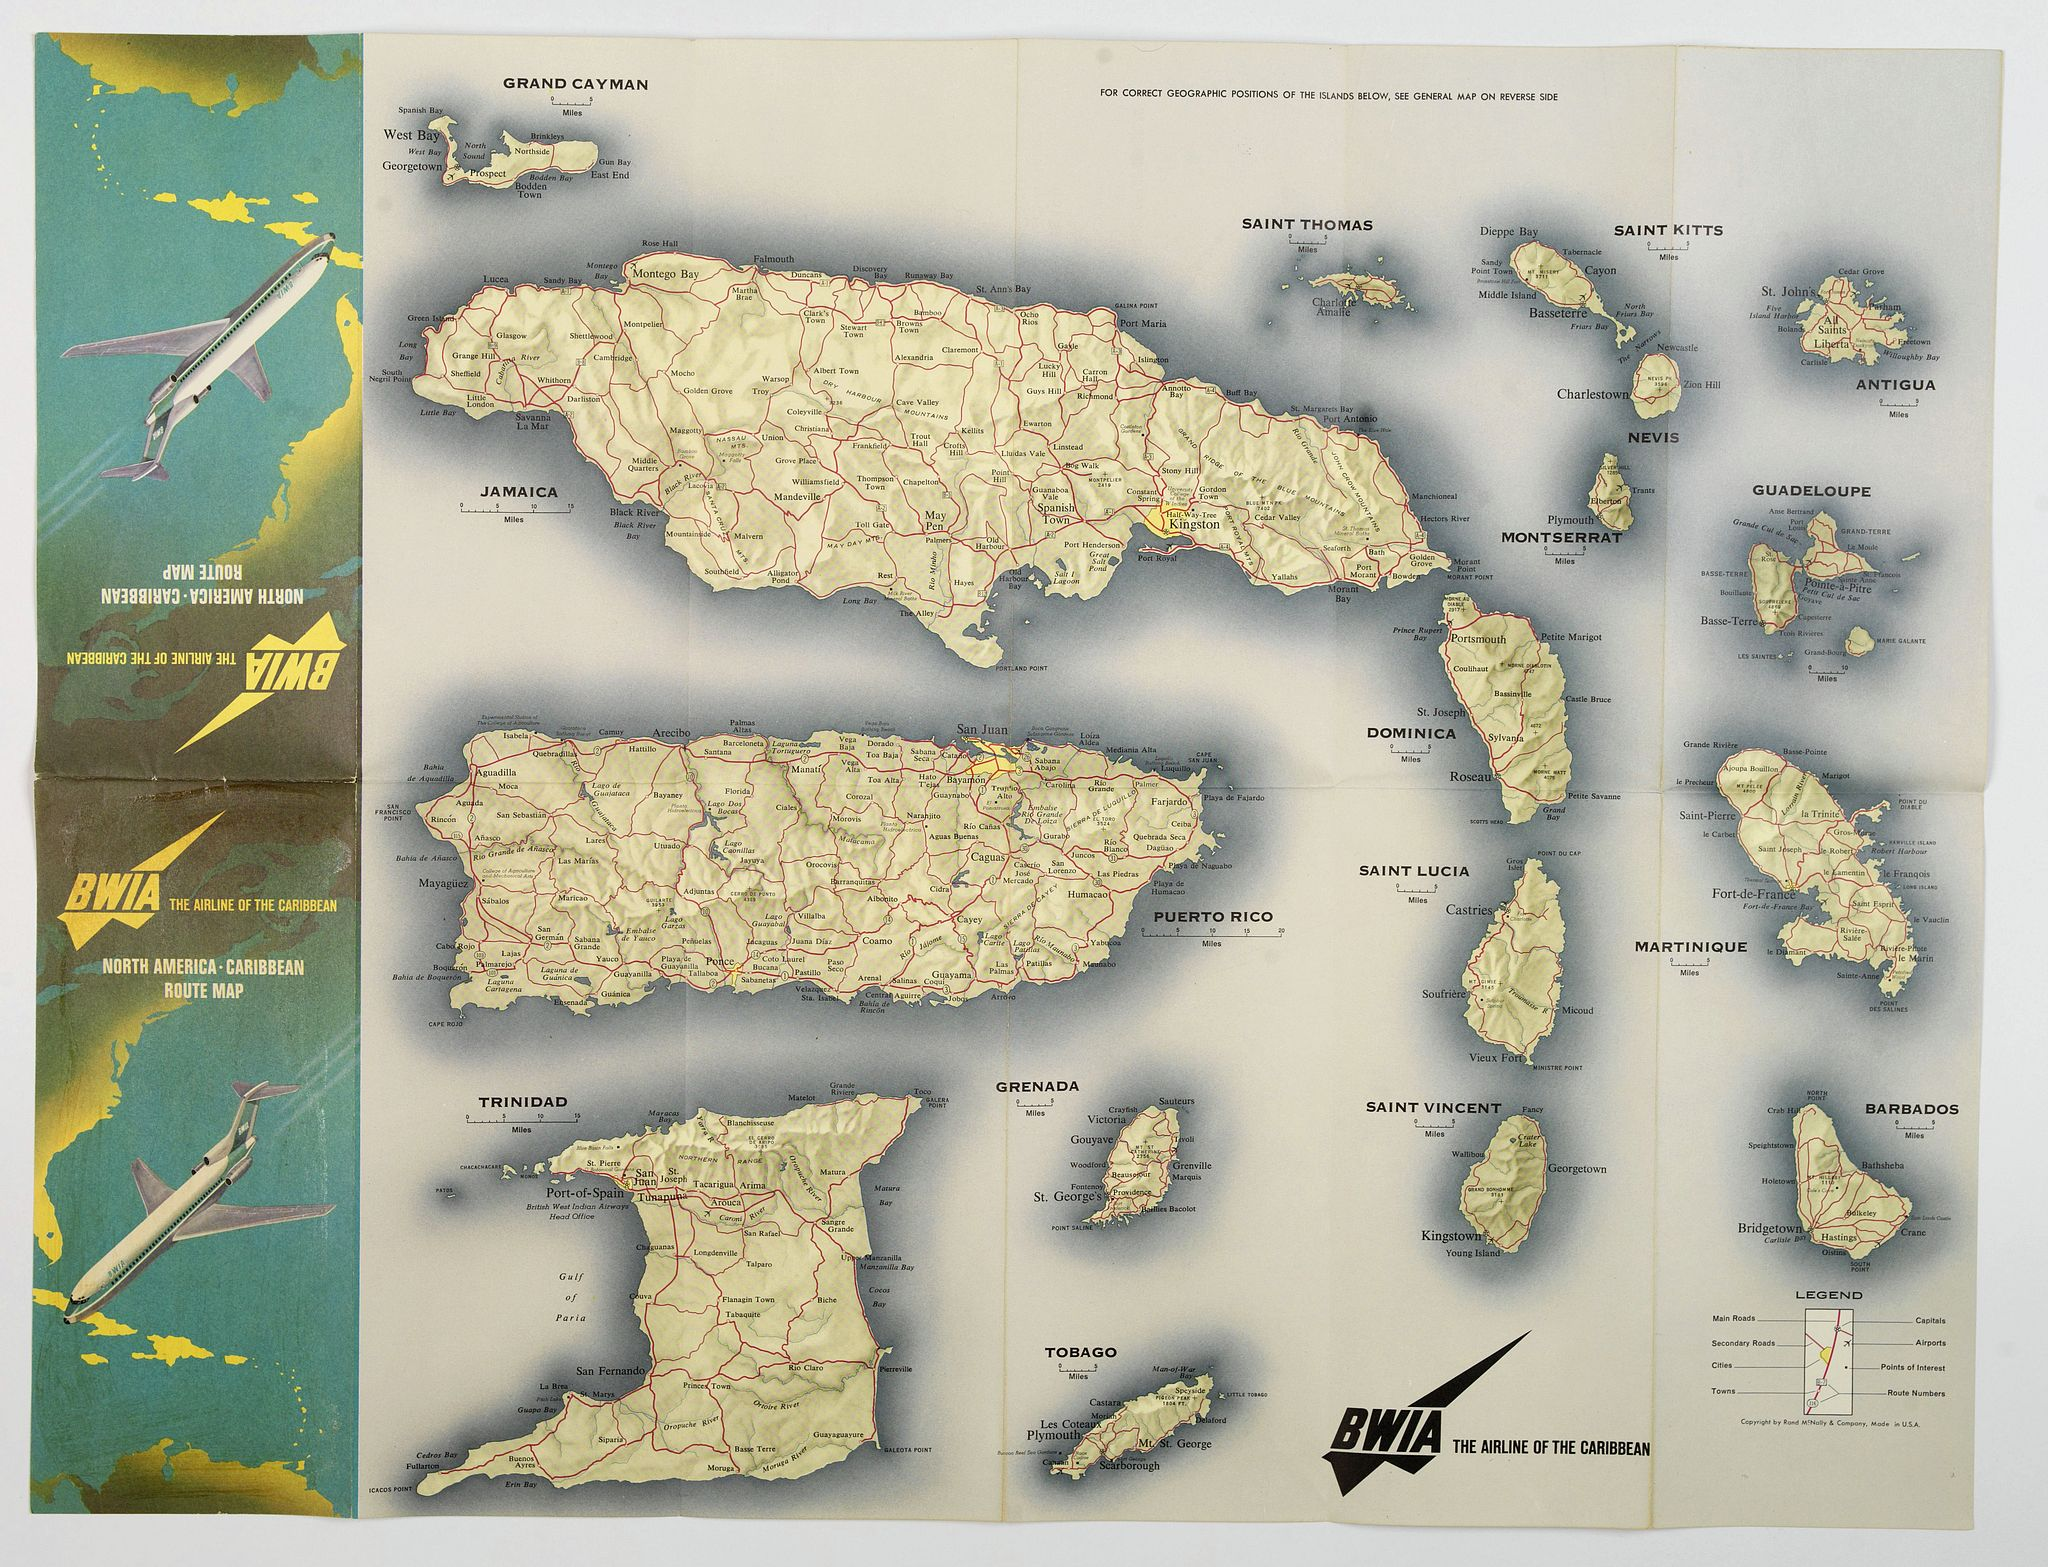 RAND MCNALLY & COMPANY.,  BWIA. North America - Caribbean Route Map., antique map, old maps